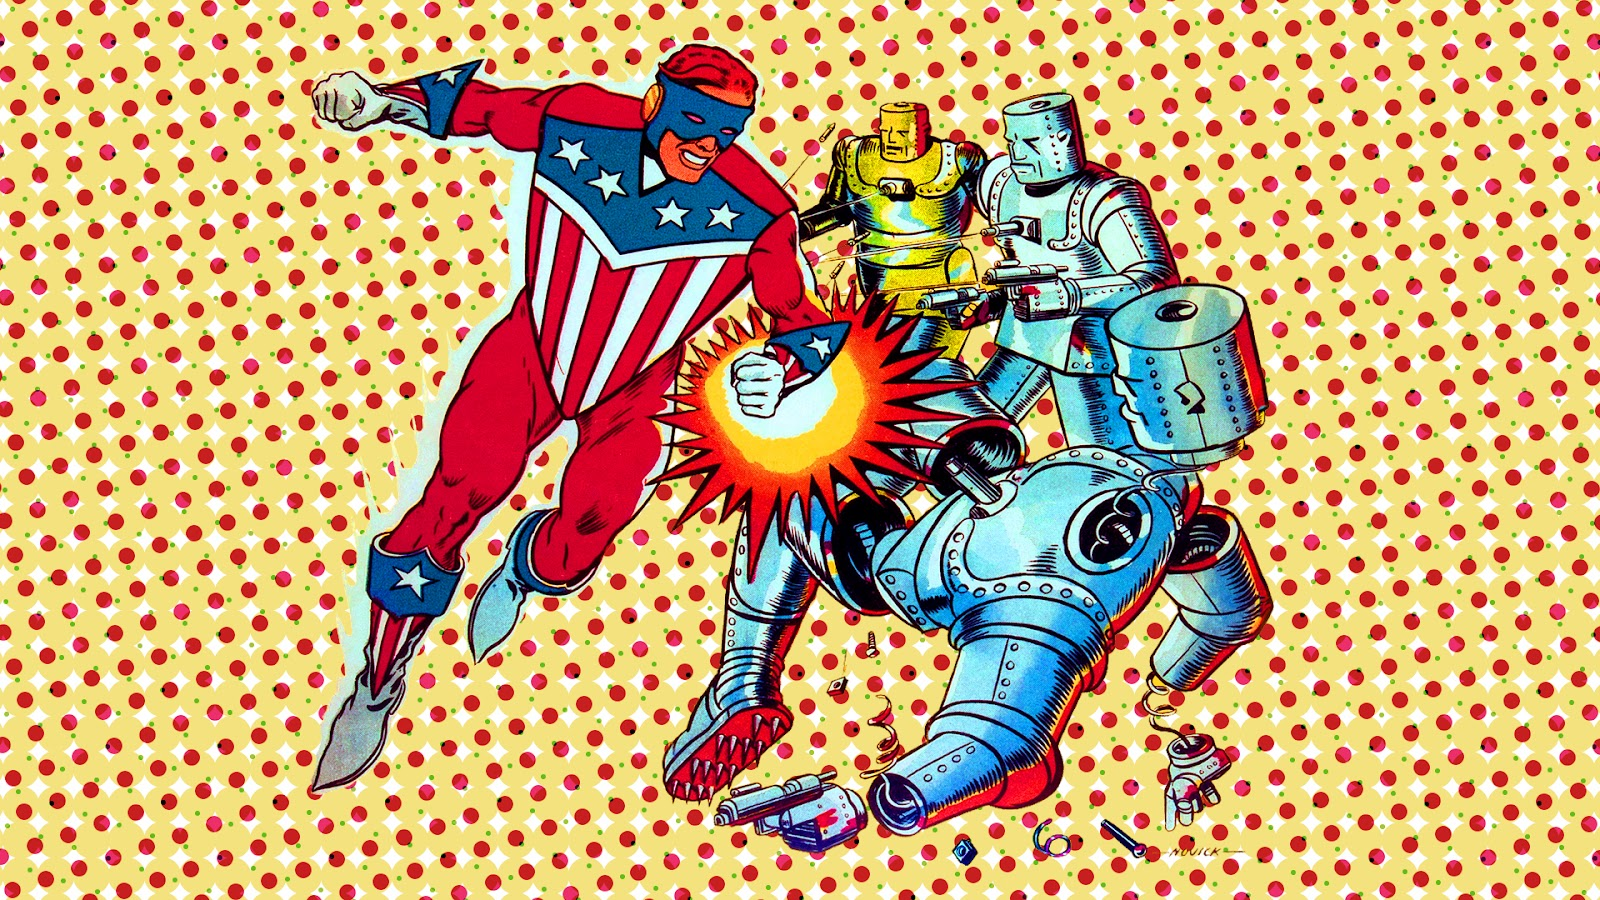 Neato Coolville: DESKTOP WALLPAPER: COMIC BOOK SUPERHEROES ... Vintage Comic Book Background